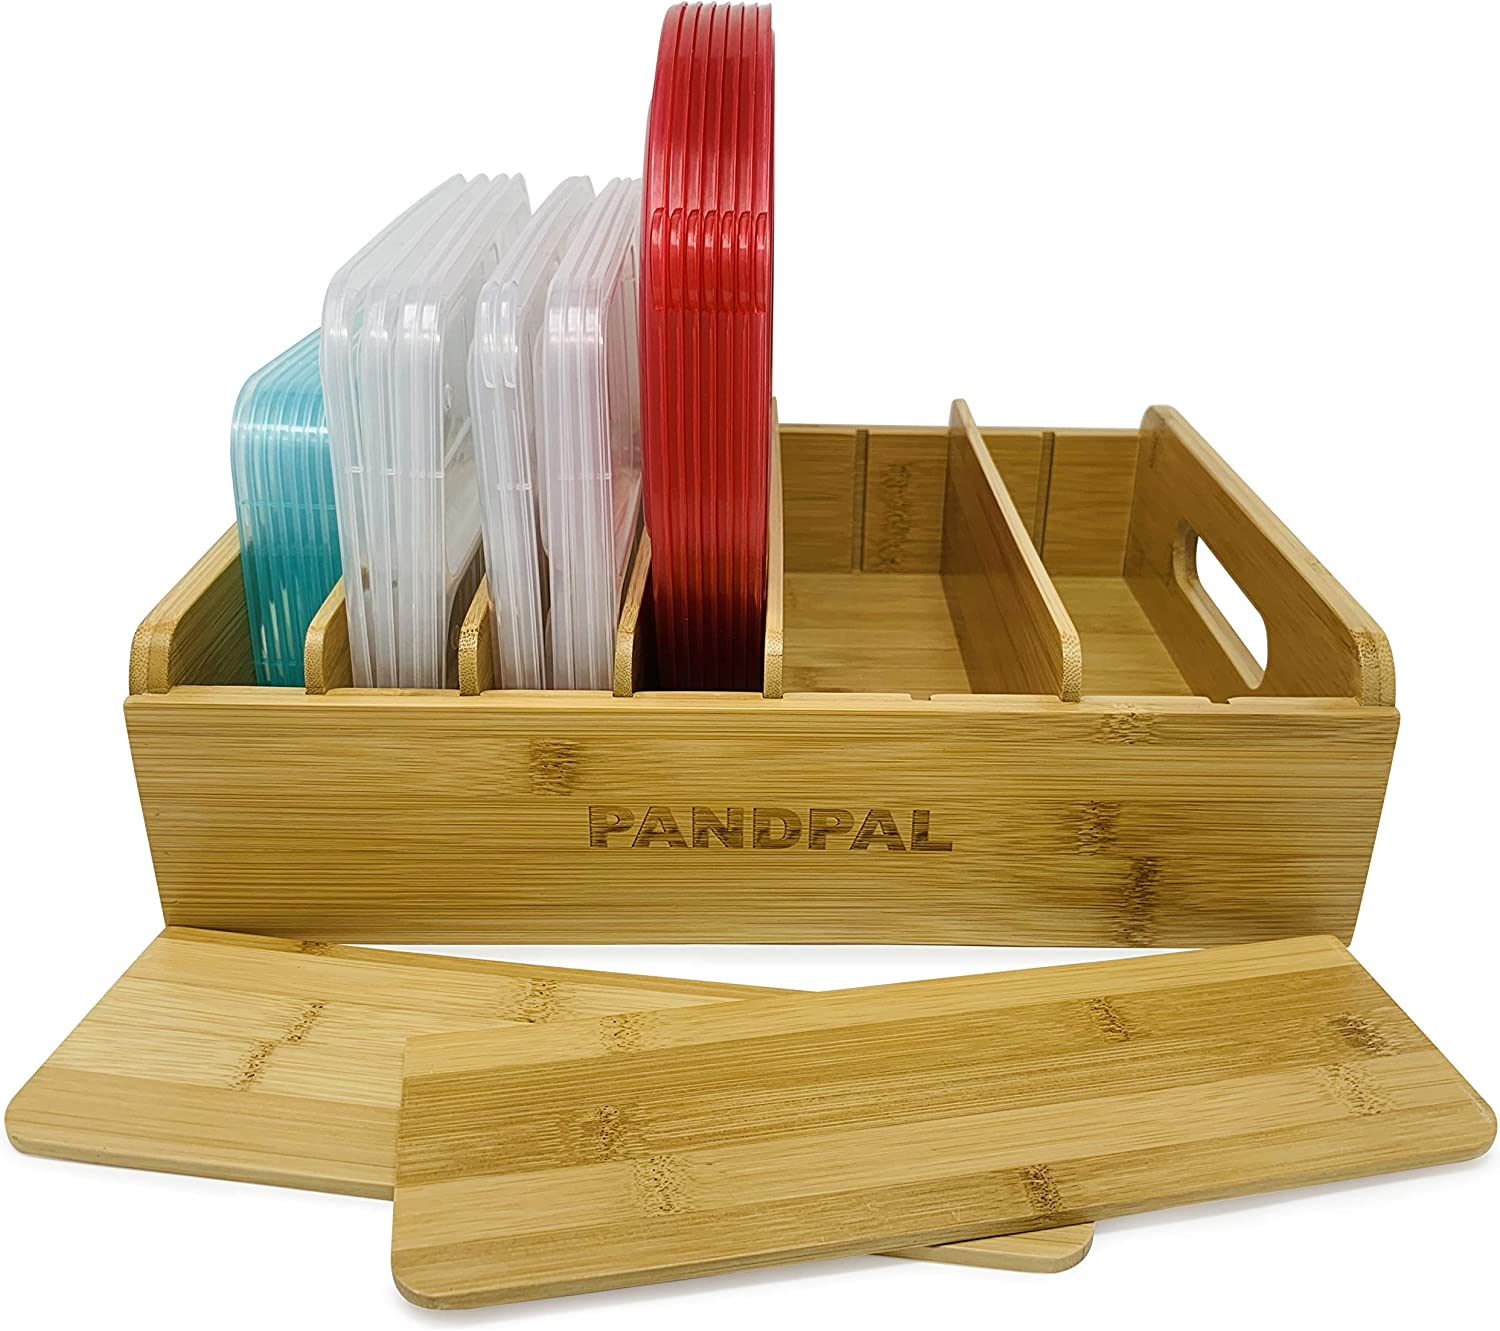 Adjustable Bamboo Lid Organizer Compatible with Tupperware Containers, Food Storage Container Lid & Kitchen Pantry Cabinet Organizer – Multipurpose Lid Holder for Kitchen, Drawer by PandPal